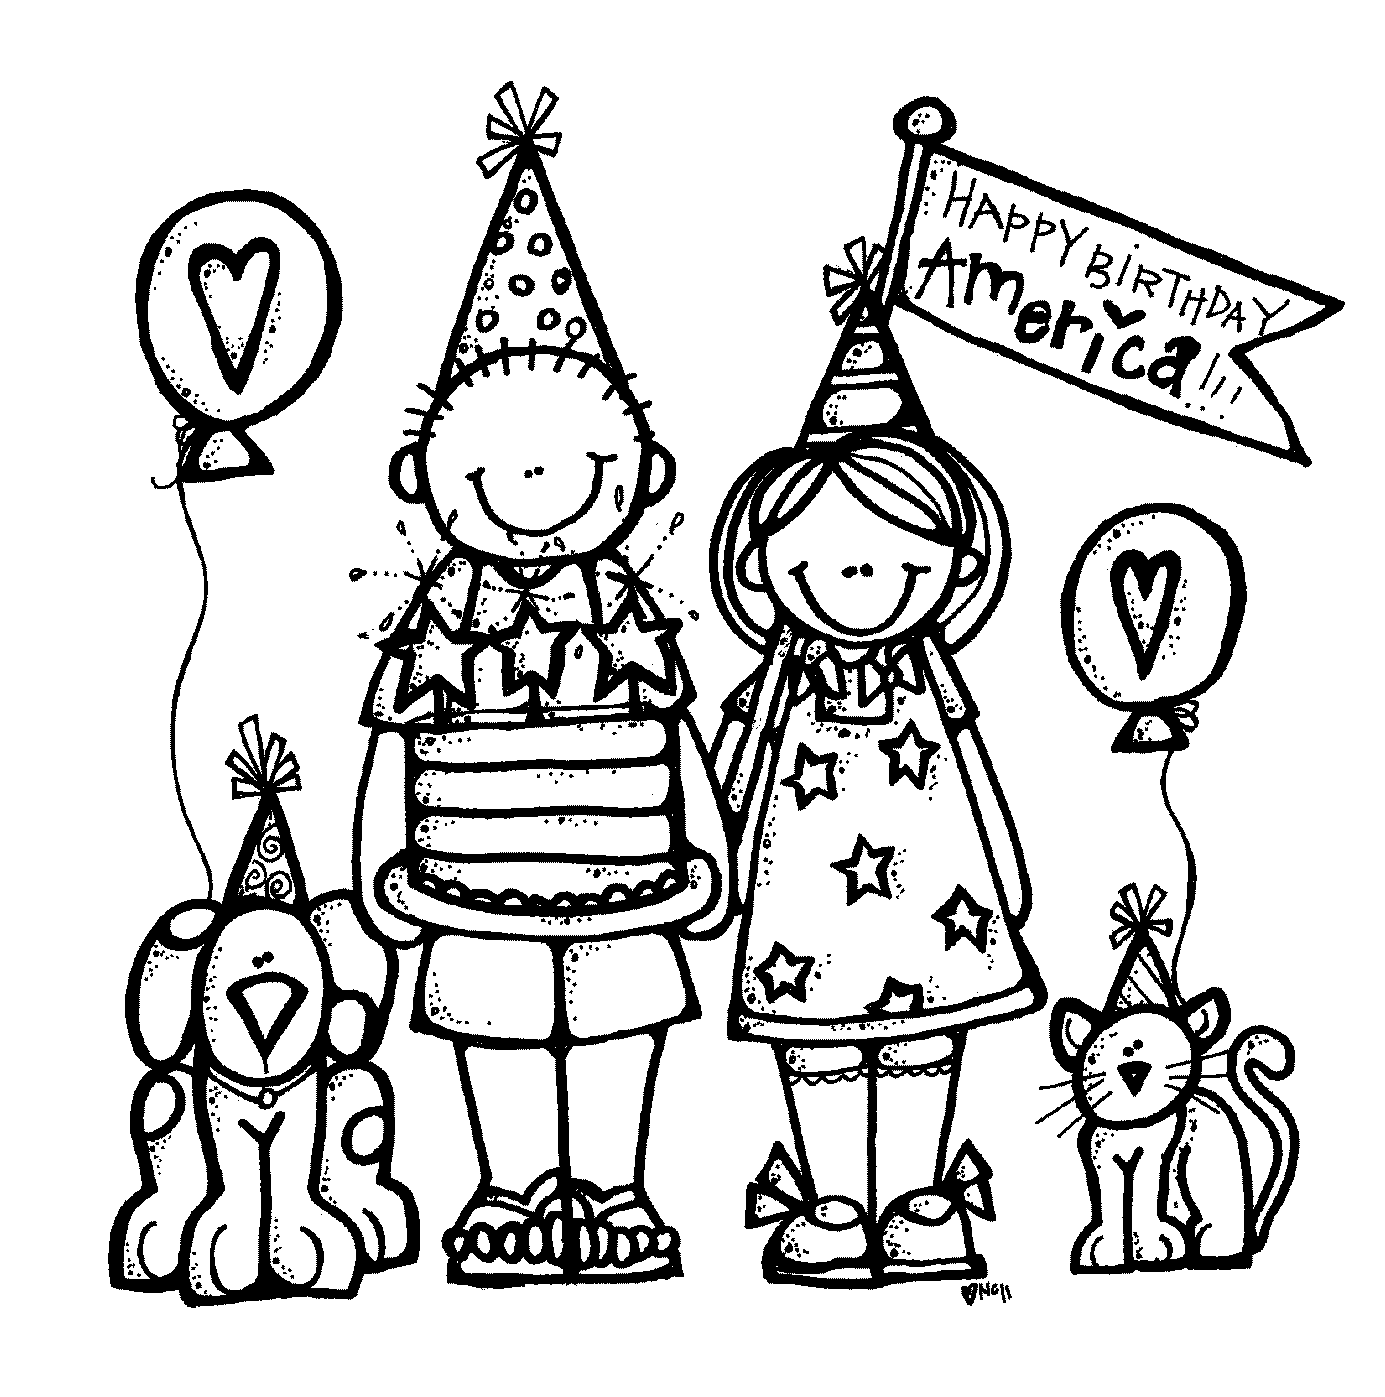 1385x1397 Happy birthday black and white birthday cake clip art free black